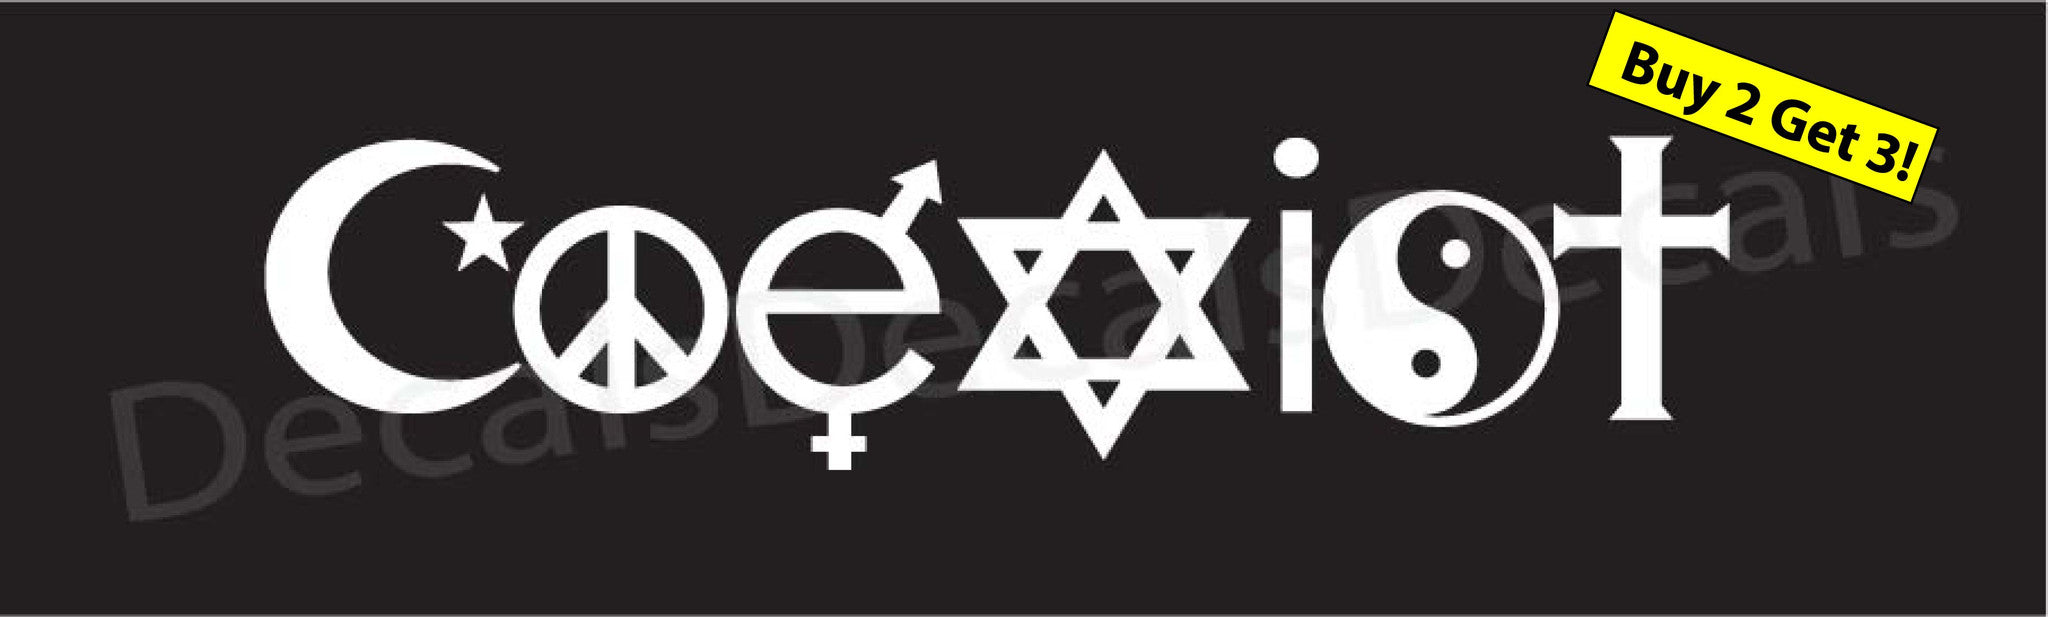 Coexist decal sticker window lap top auto cant we all just get along free ship